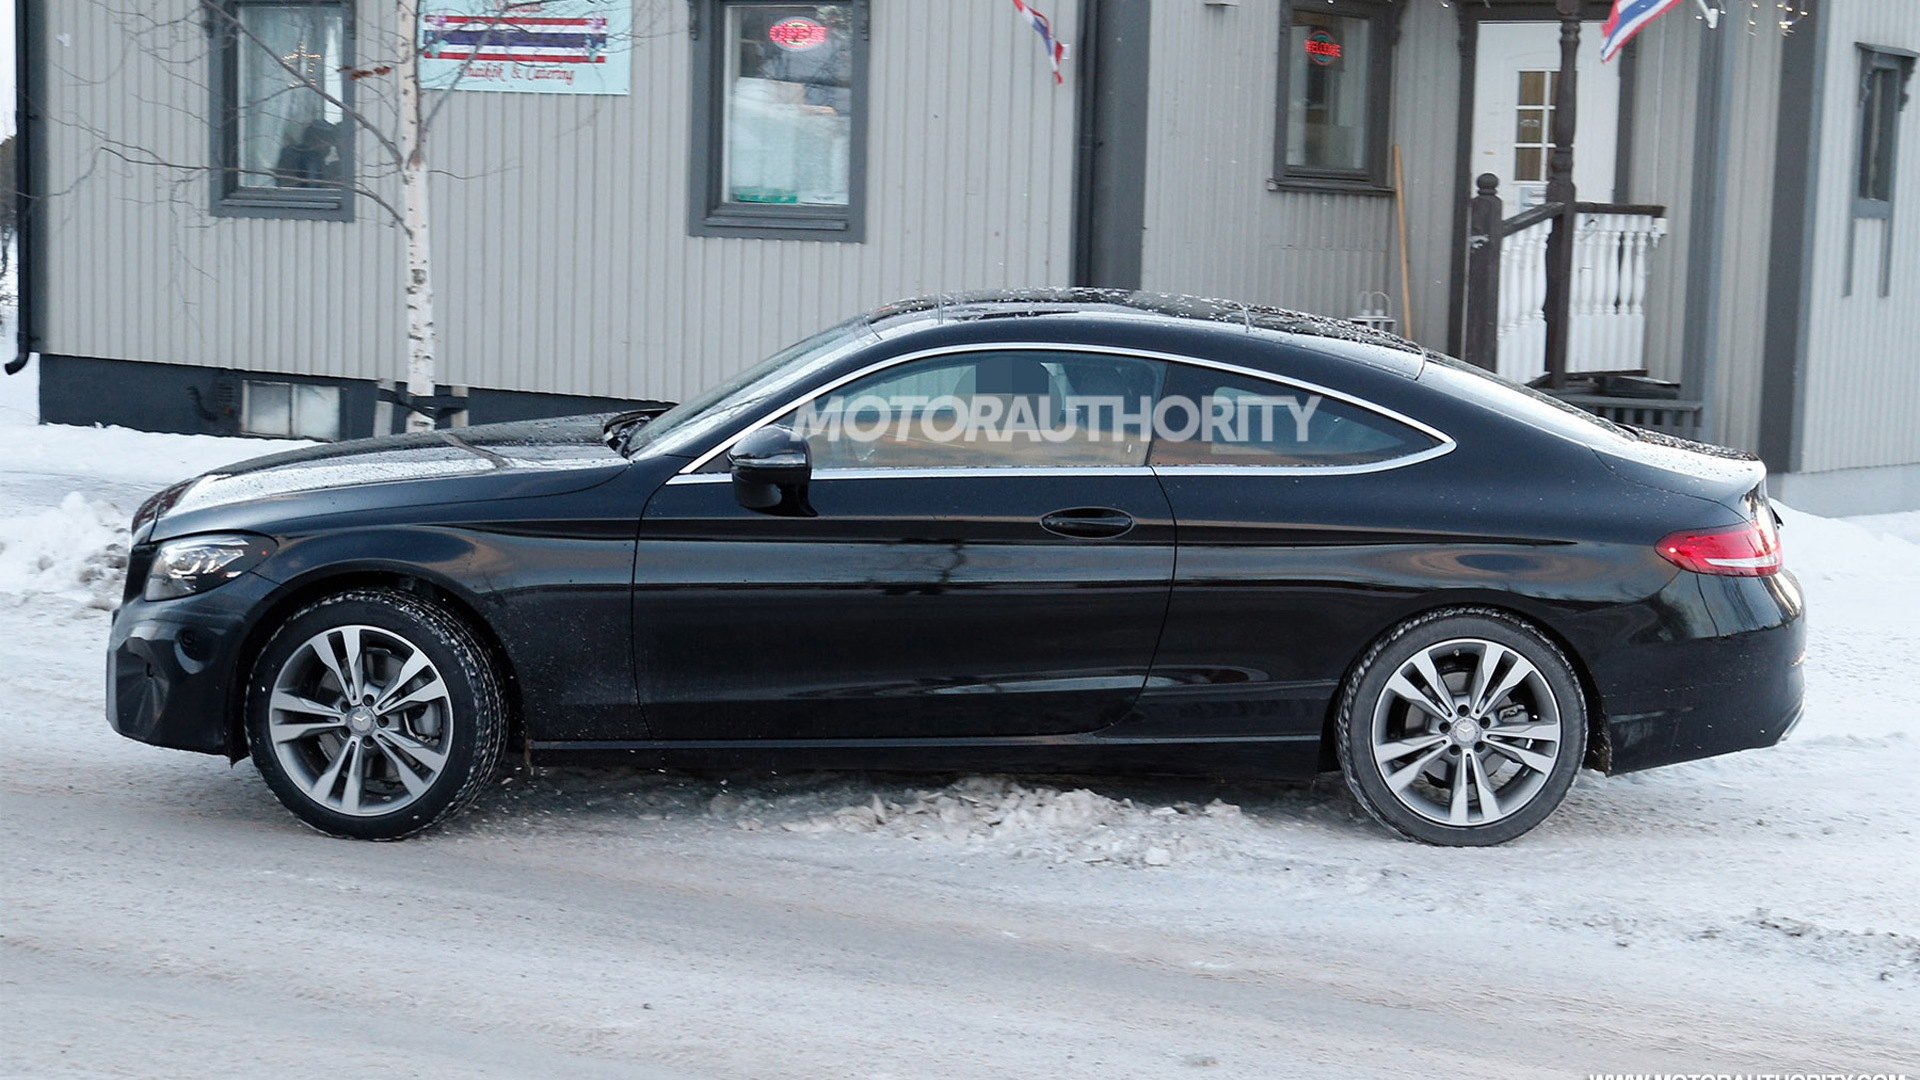 60 The 2020 Mercedes Benz C Class Spy Shoot